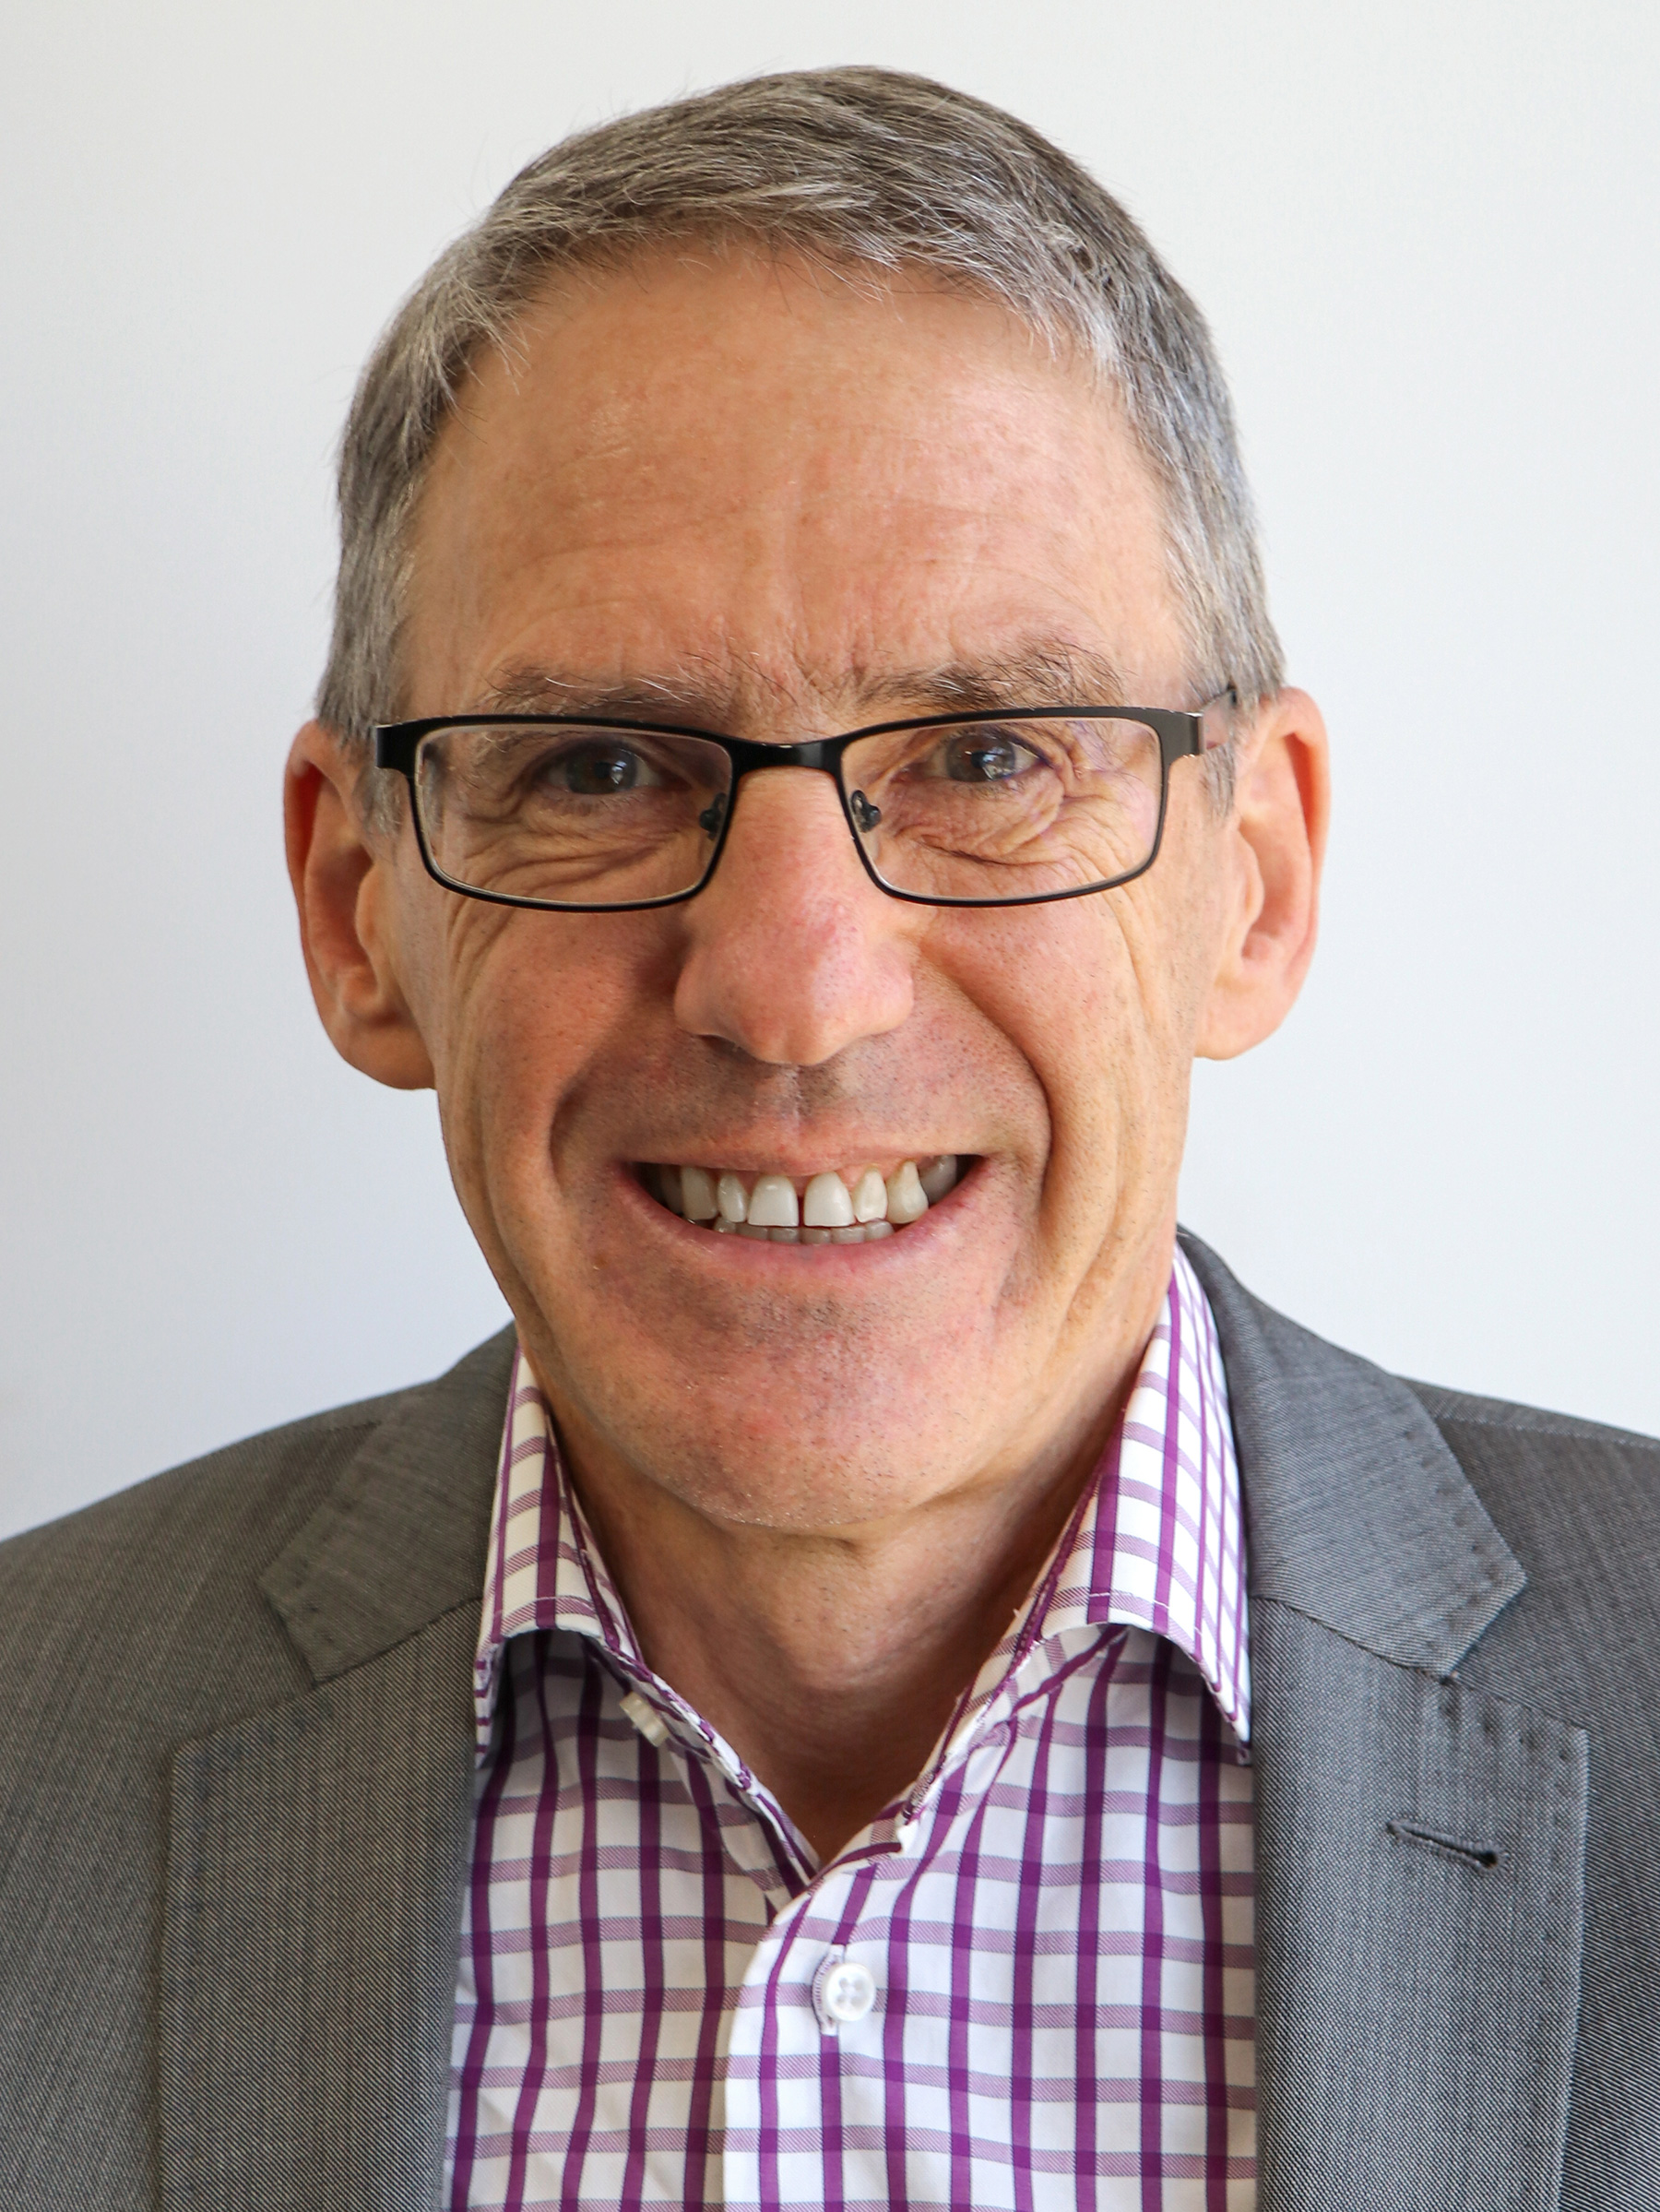 Portrait Of Kevin Neville, Board Member | Interact Australia Team